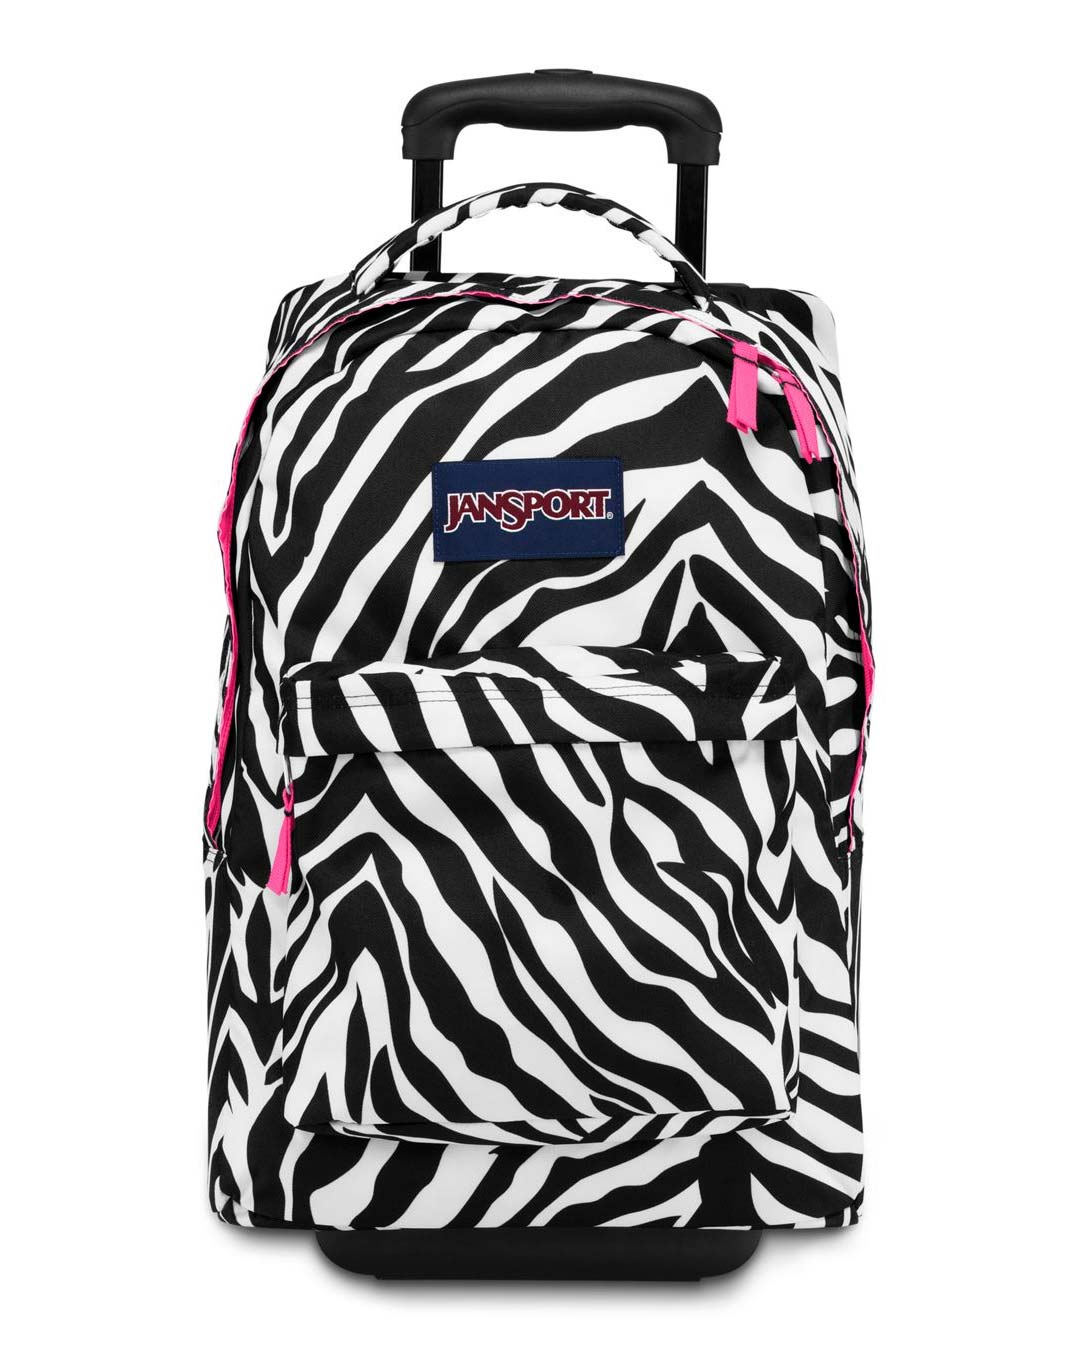 Jansport Backpacks With Wheels 0r2dUgVU